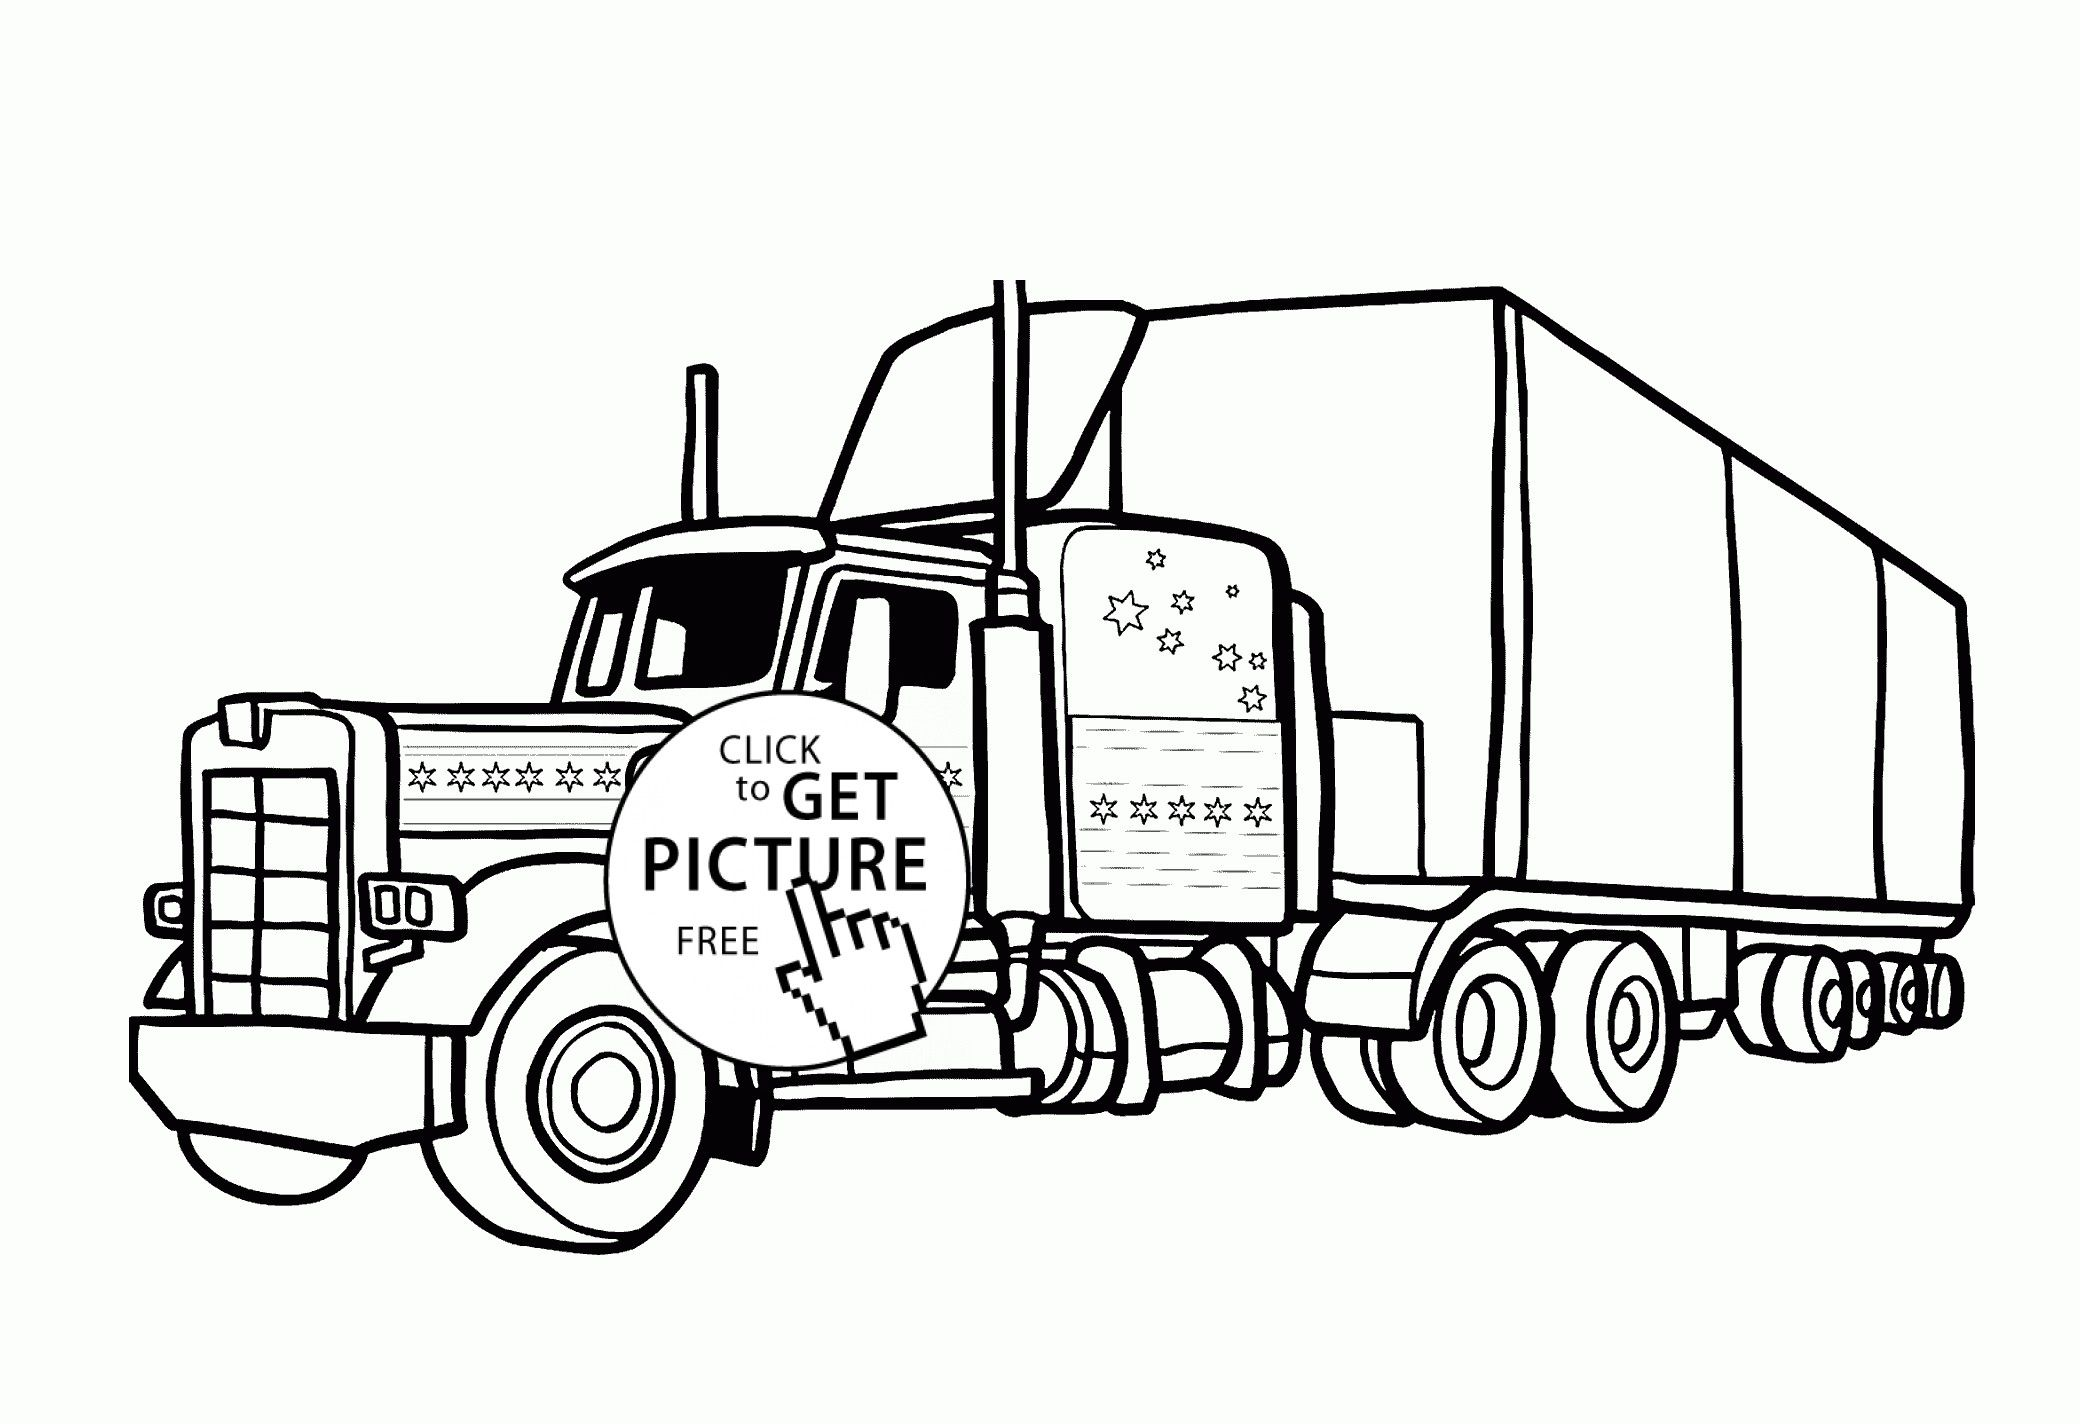 Horse Trailer Coloring Pages From The Thousand Photos Online About Horse Trailer Coloring Pa Truck Coloring Pages Cars Coloring Pages Coloring Pages For Kids